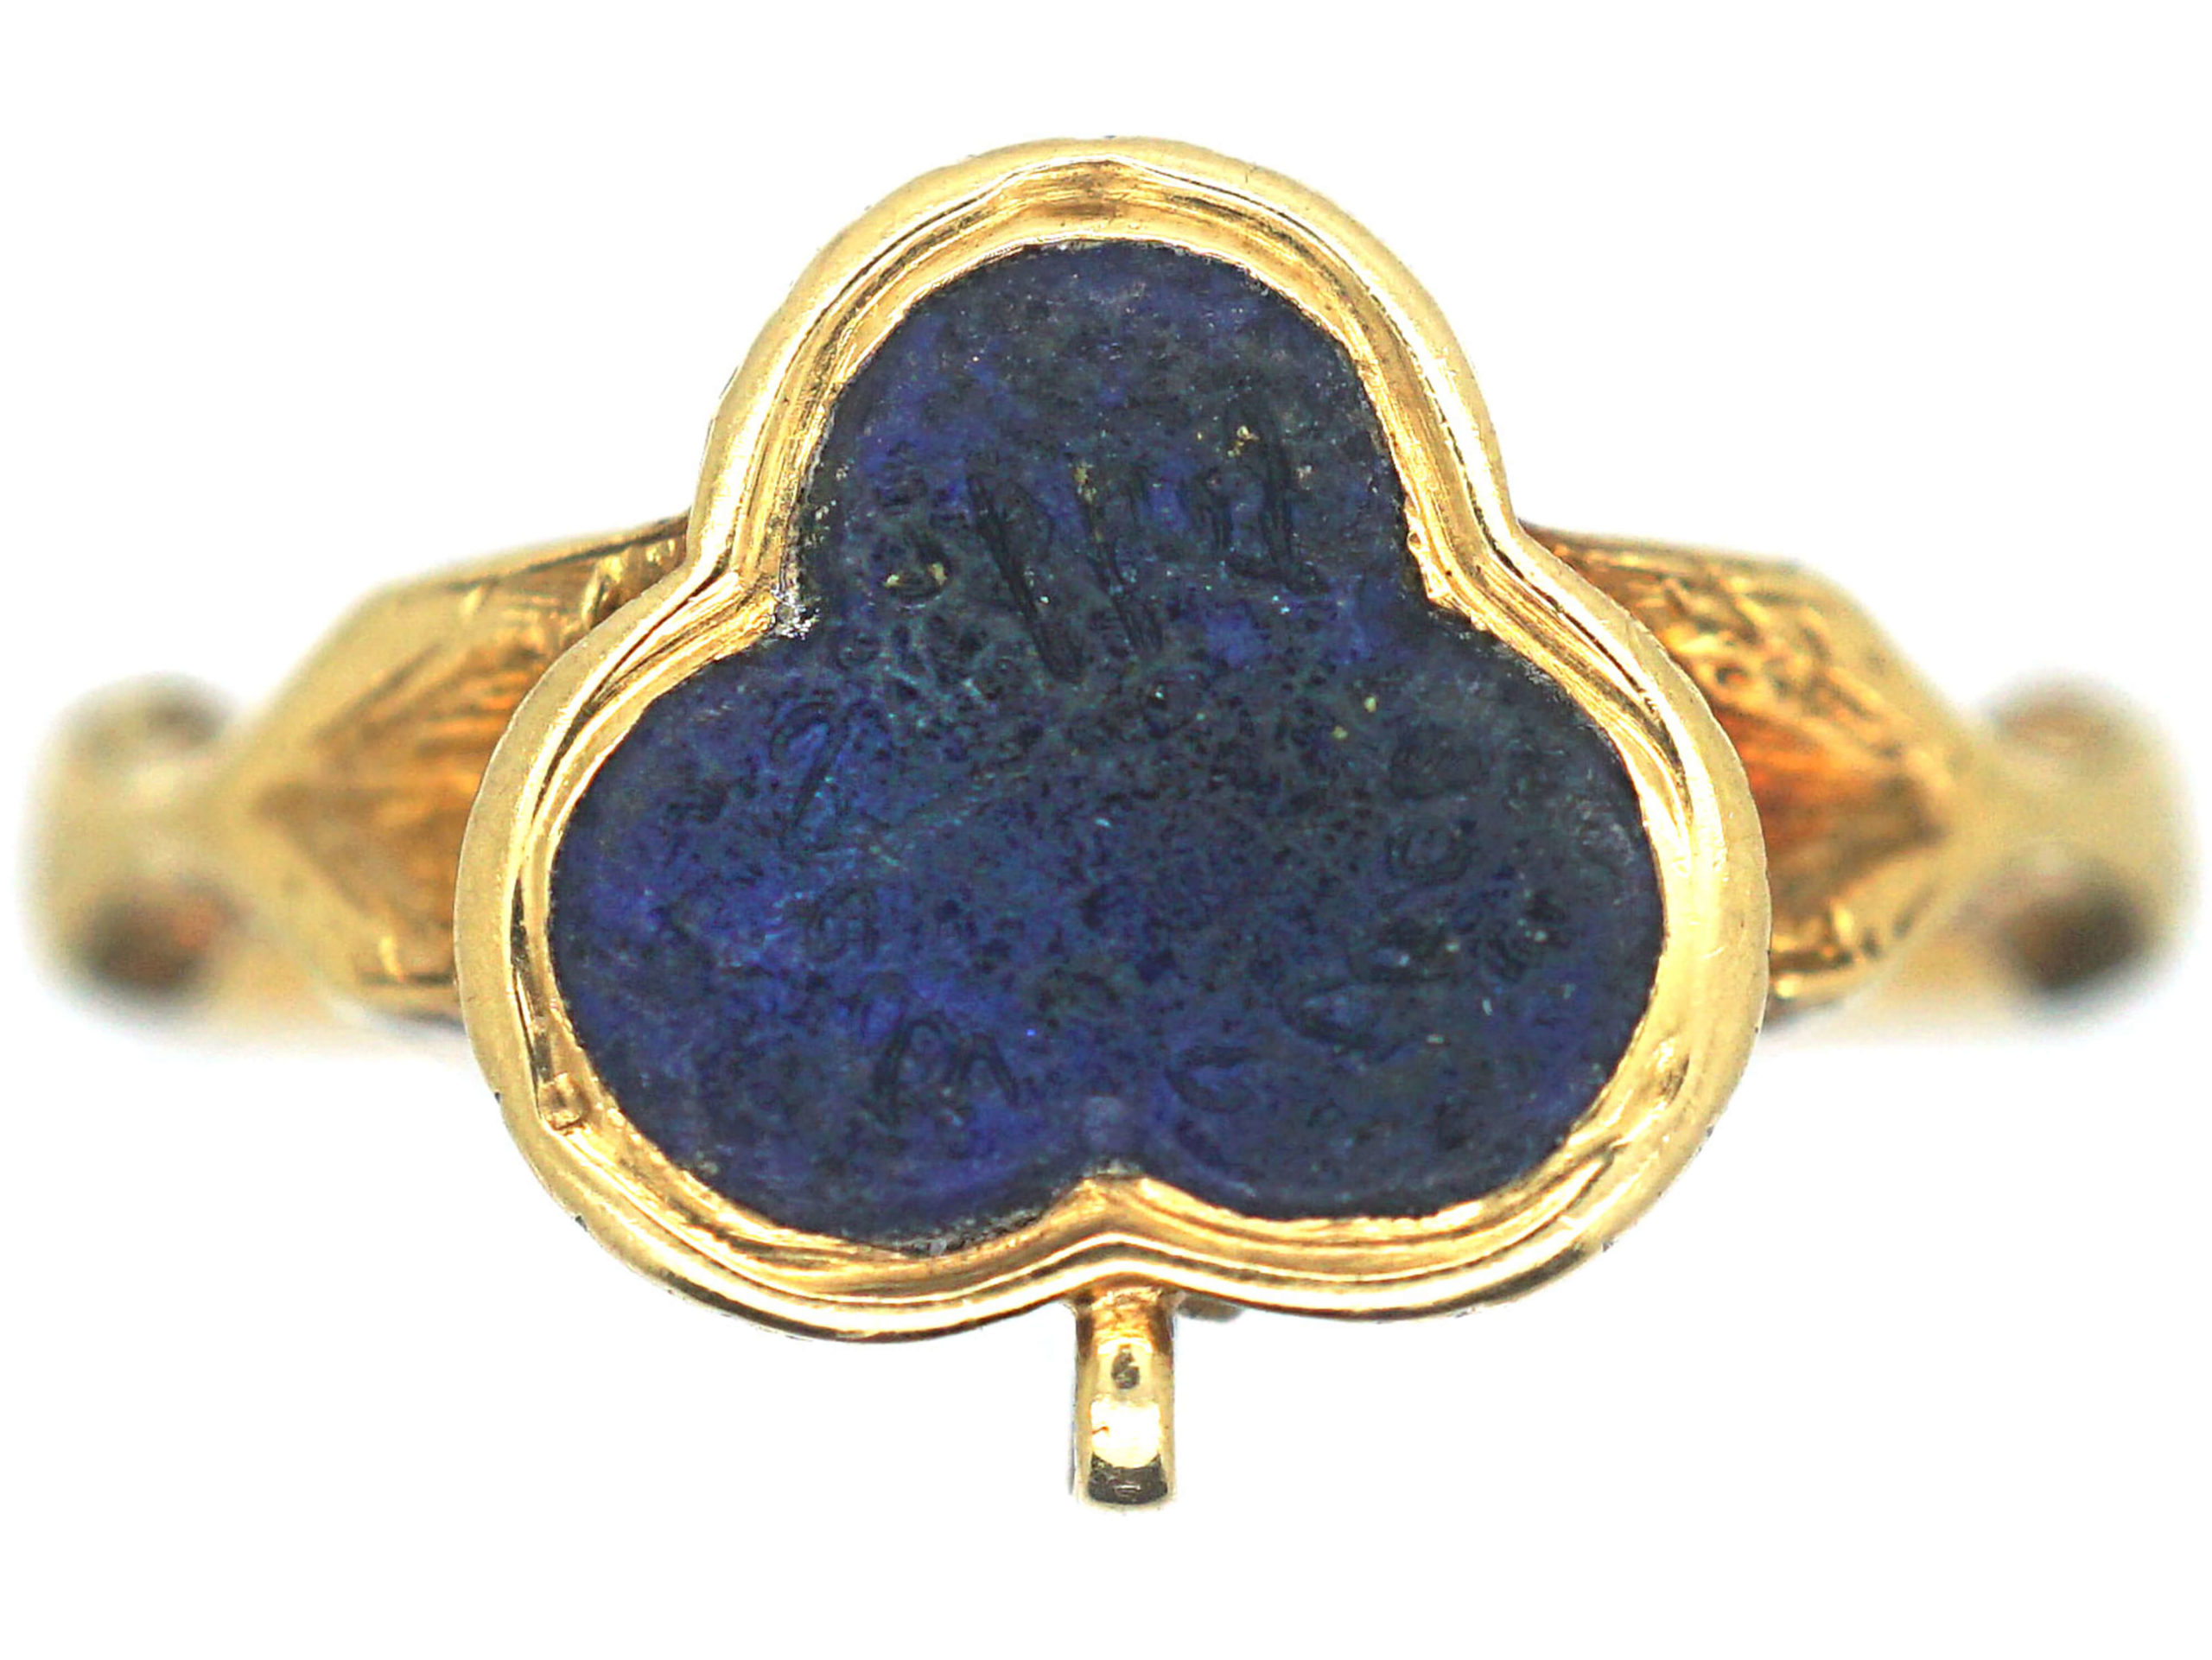 Early Victorian 18ct Gold Ring set with Lapis Lazuli in a Trefoil Design